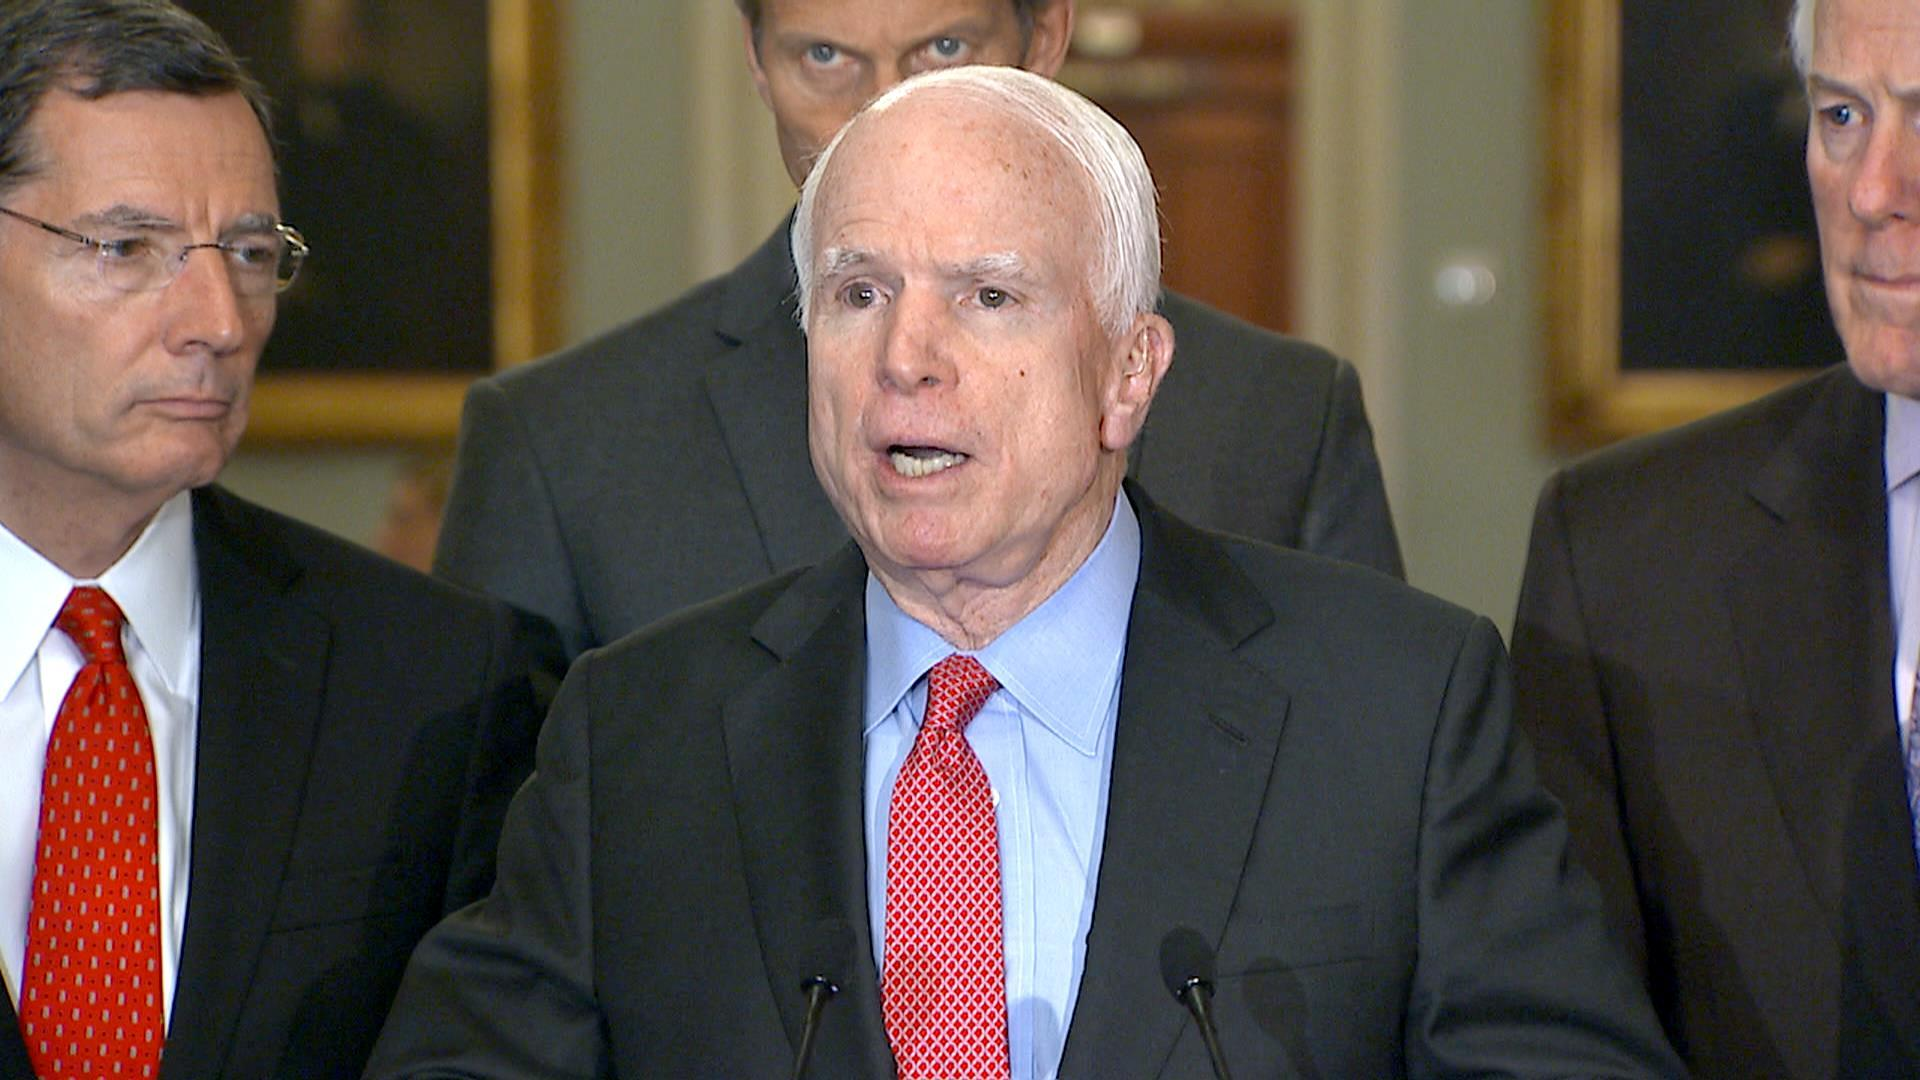 McCain, Reid Exchange Tough Words Over Defense Bill